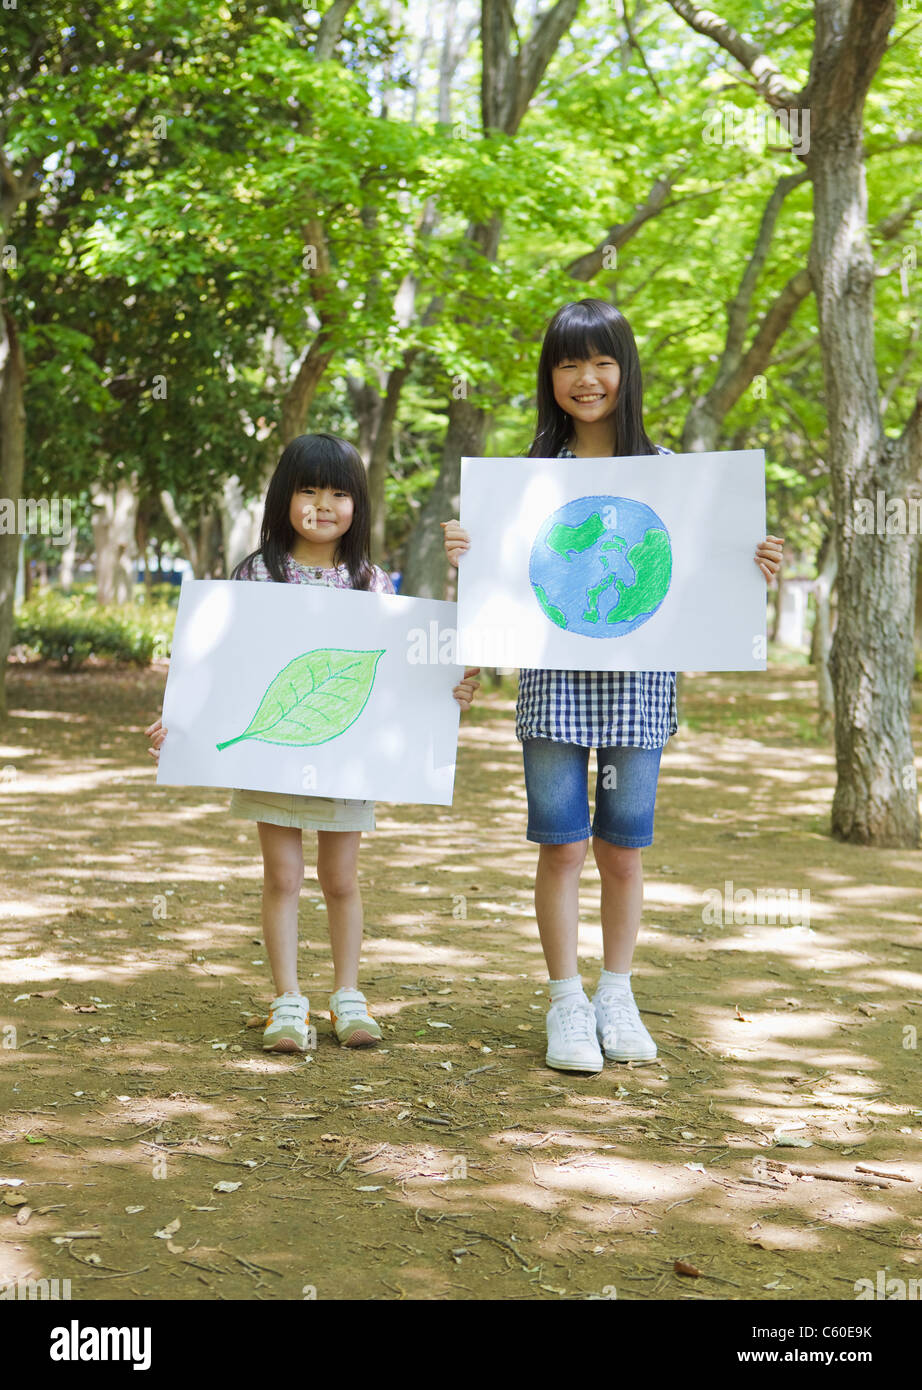 Sisters holding drawings of leaf and globe - Stock Image